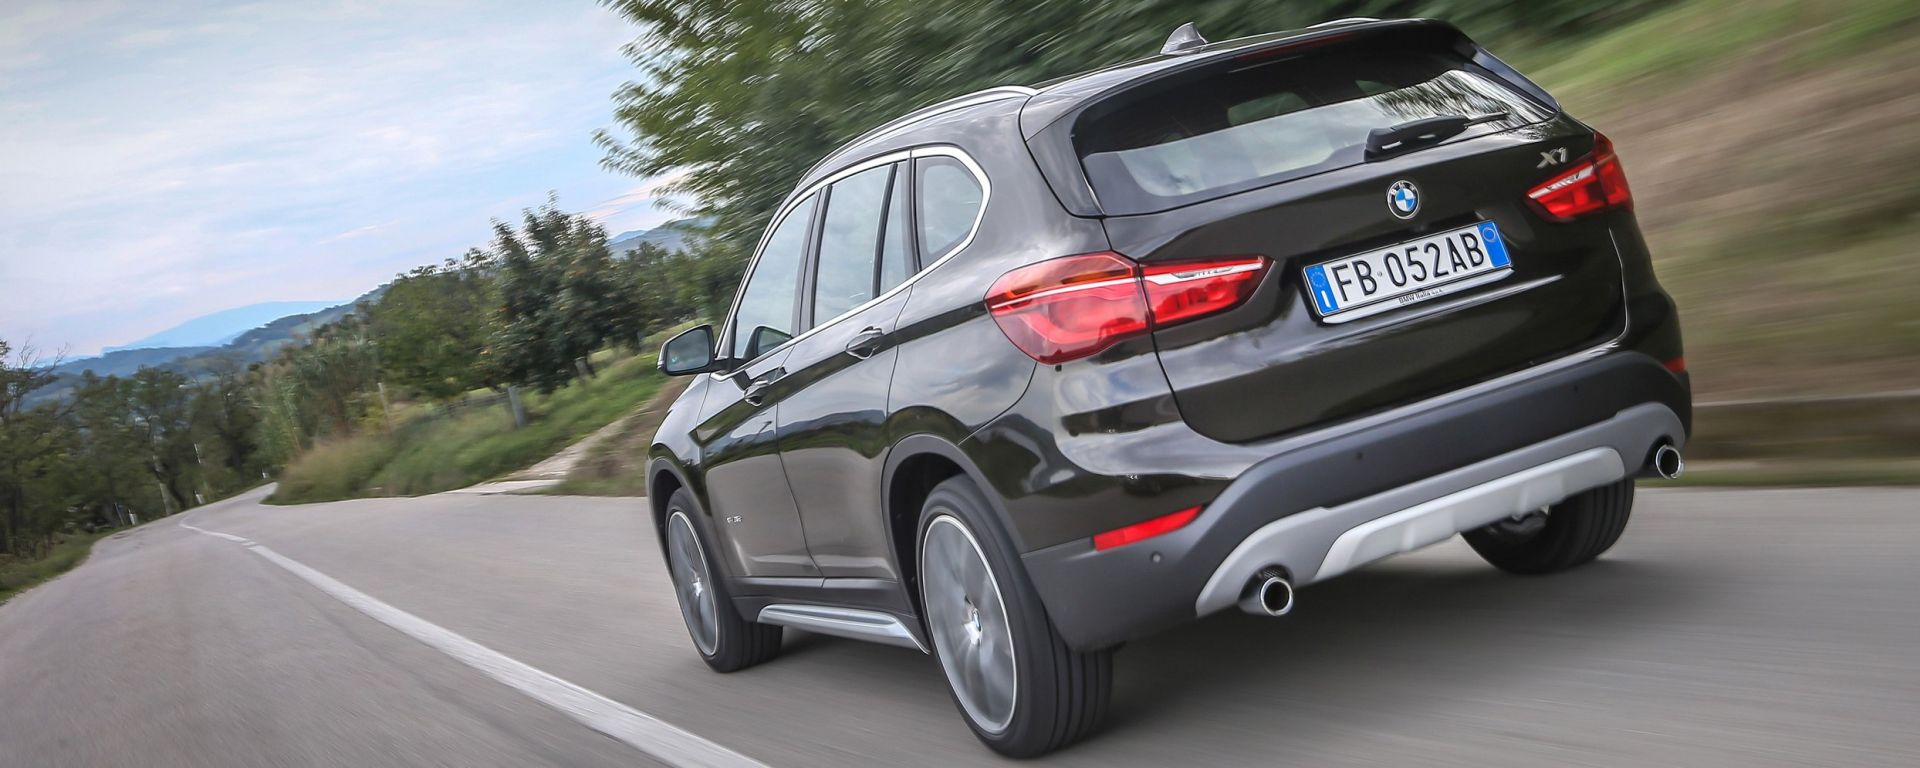 BMW X1 2016, il video